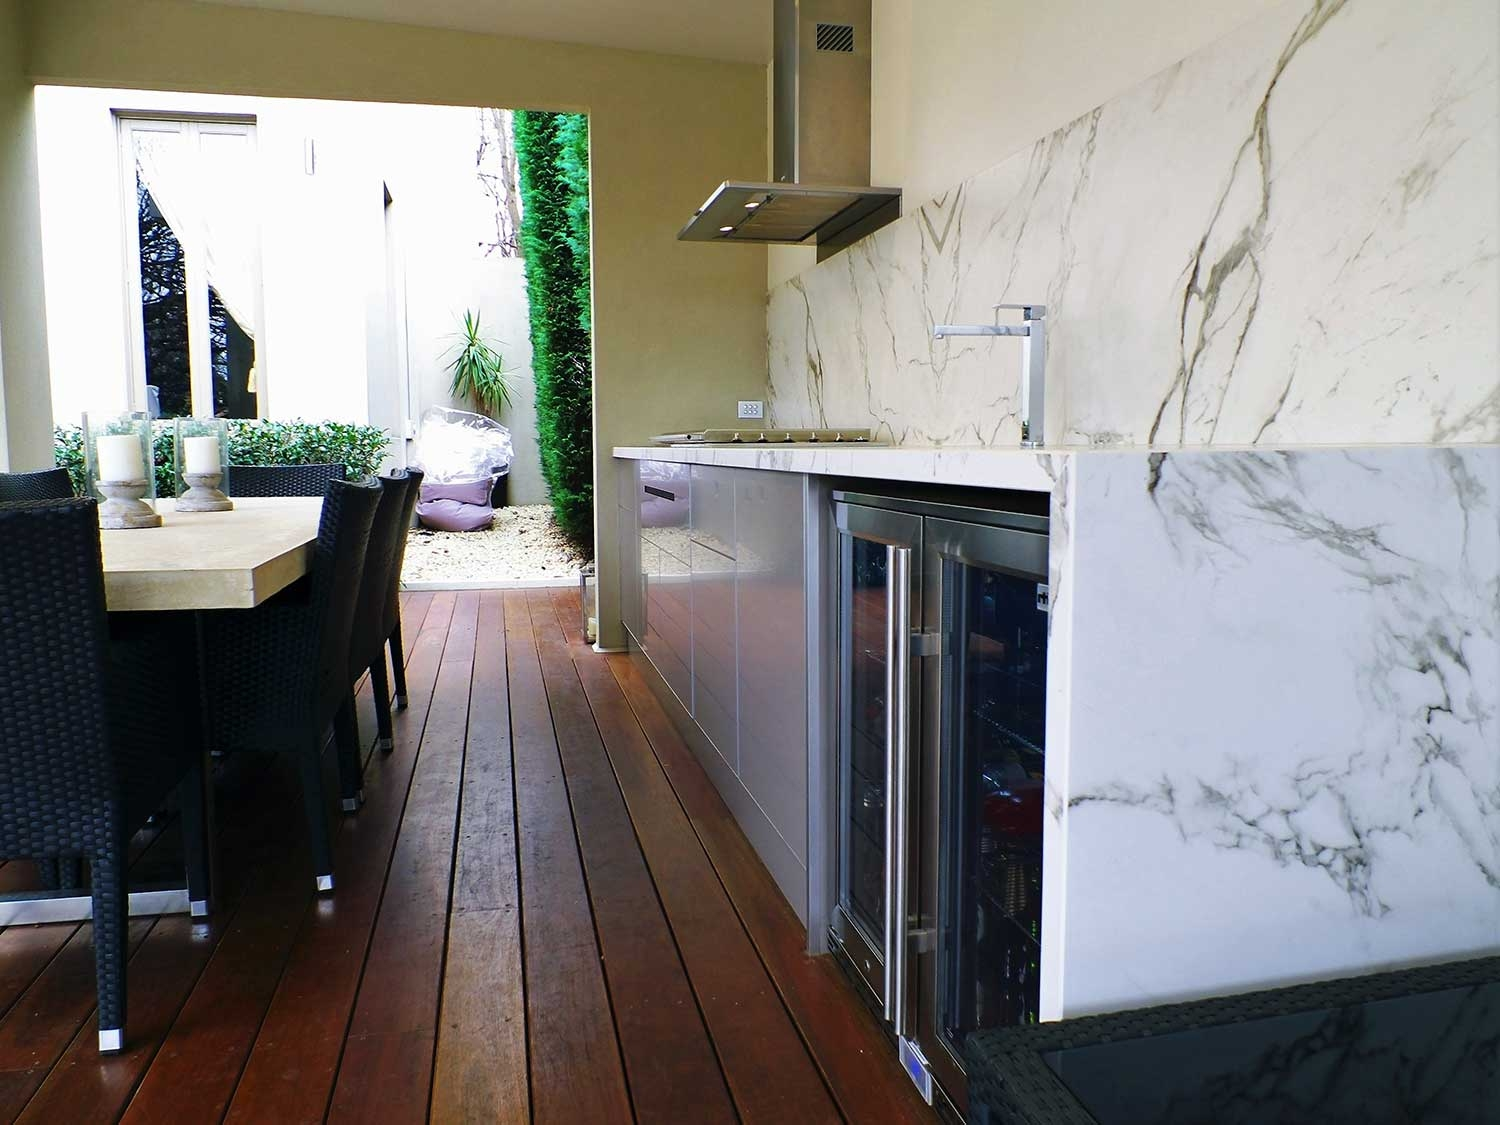 Beefeater-Proline-Dekton-Aura-Outdoor-Kitchen-by-LimeTree-Alfresco